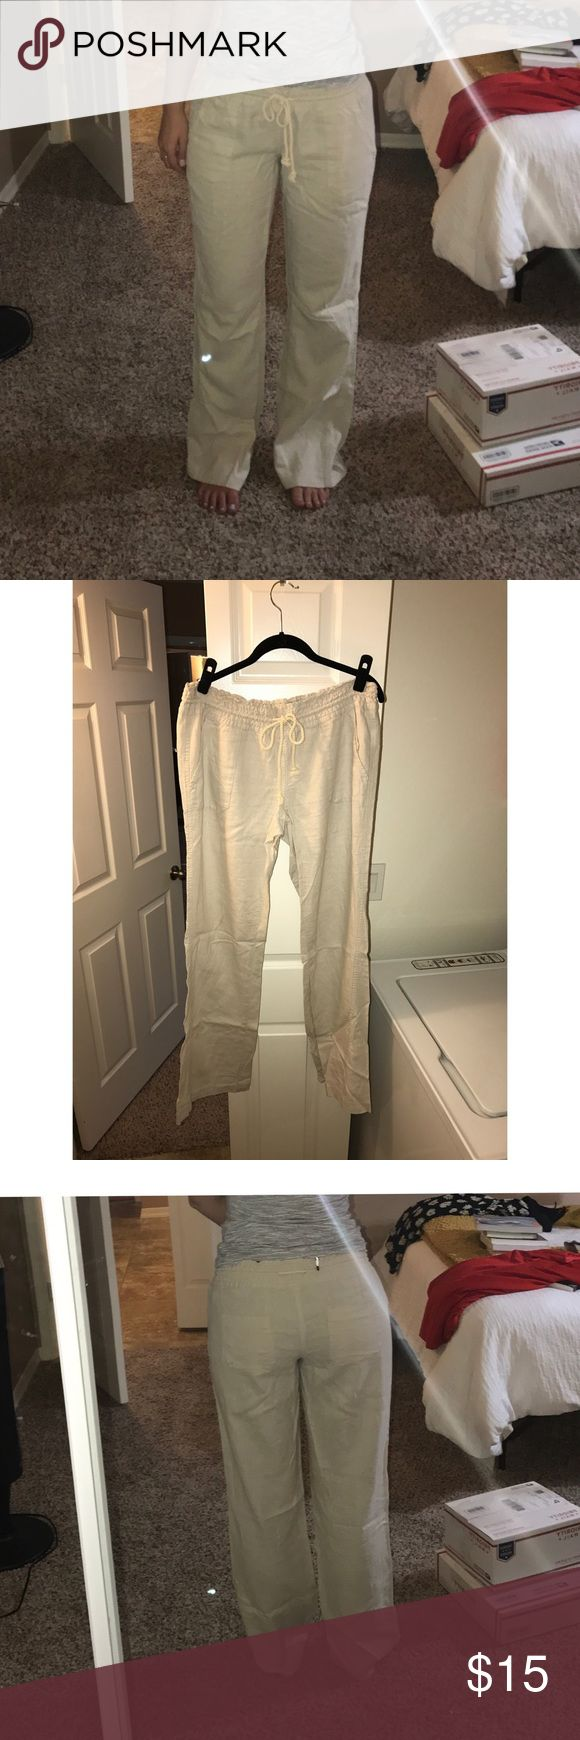 """Roxy Tan Linen Beach Pants Roxy. Tan linen beach pants. Size XL, but definitely run small for their size! I'm typically a 6 and these fit me exactly how it shows in the photo and I am 5'8"""" for reference. Literally worn once for sorority recruitment and then never again so they are in absolute perfect condition, just need to be steamed or ironed :) Roxy Pants"""